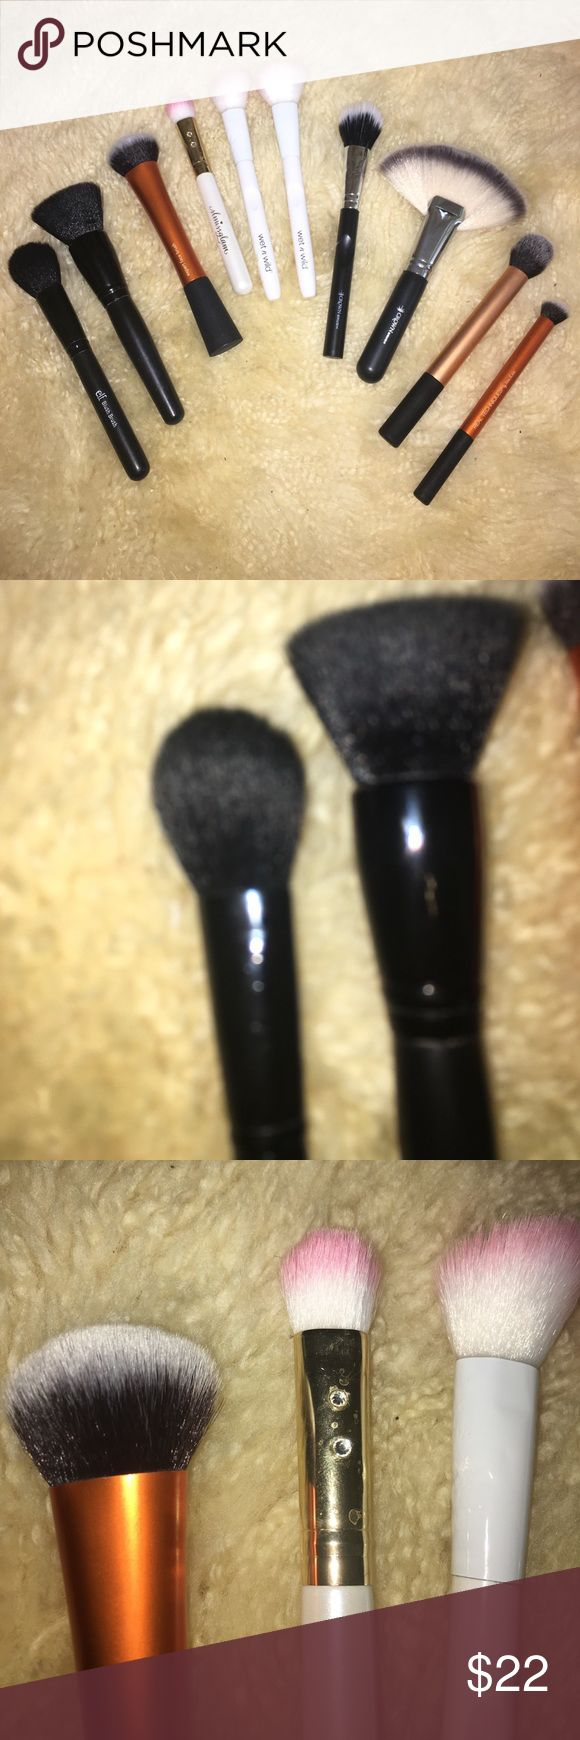 Ultimate Face Makeup Brush Bundle/Lot These brushes are slightly damp in the pictures because I just washed and sanitized them. Included are: 1 ELF blush brush, 1 ELF powder brush, 1 real techniques expert Face brush, 1 real techniques deluxe concealer brush, 1 sl missglam W07 brush, 2 wet n wild blush brushes, 1 crown brush duo fibre brush, 1 crown brush ss023 jumbo kabuki fan, and 1 real techniques contour brush. I also am willing to make custom bundles and I have a very generous bundle…